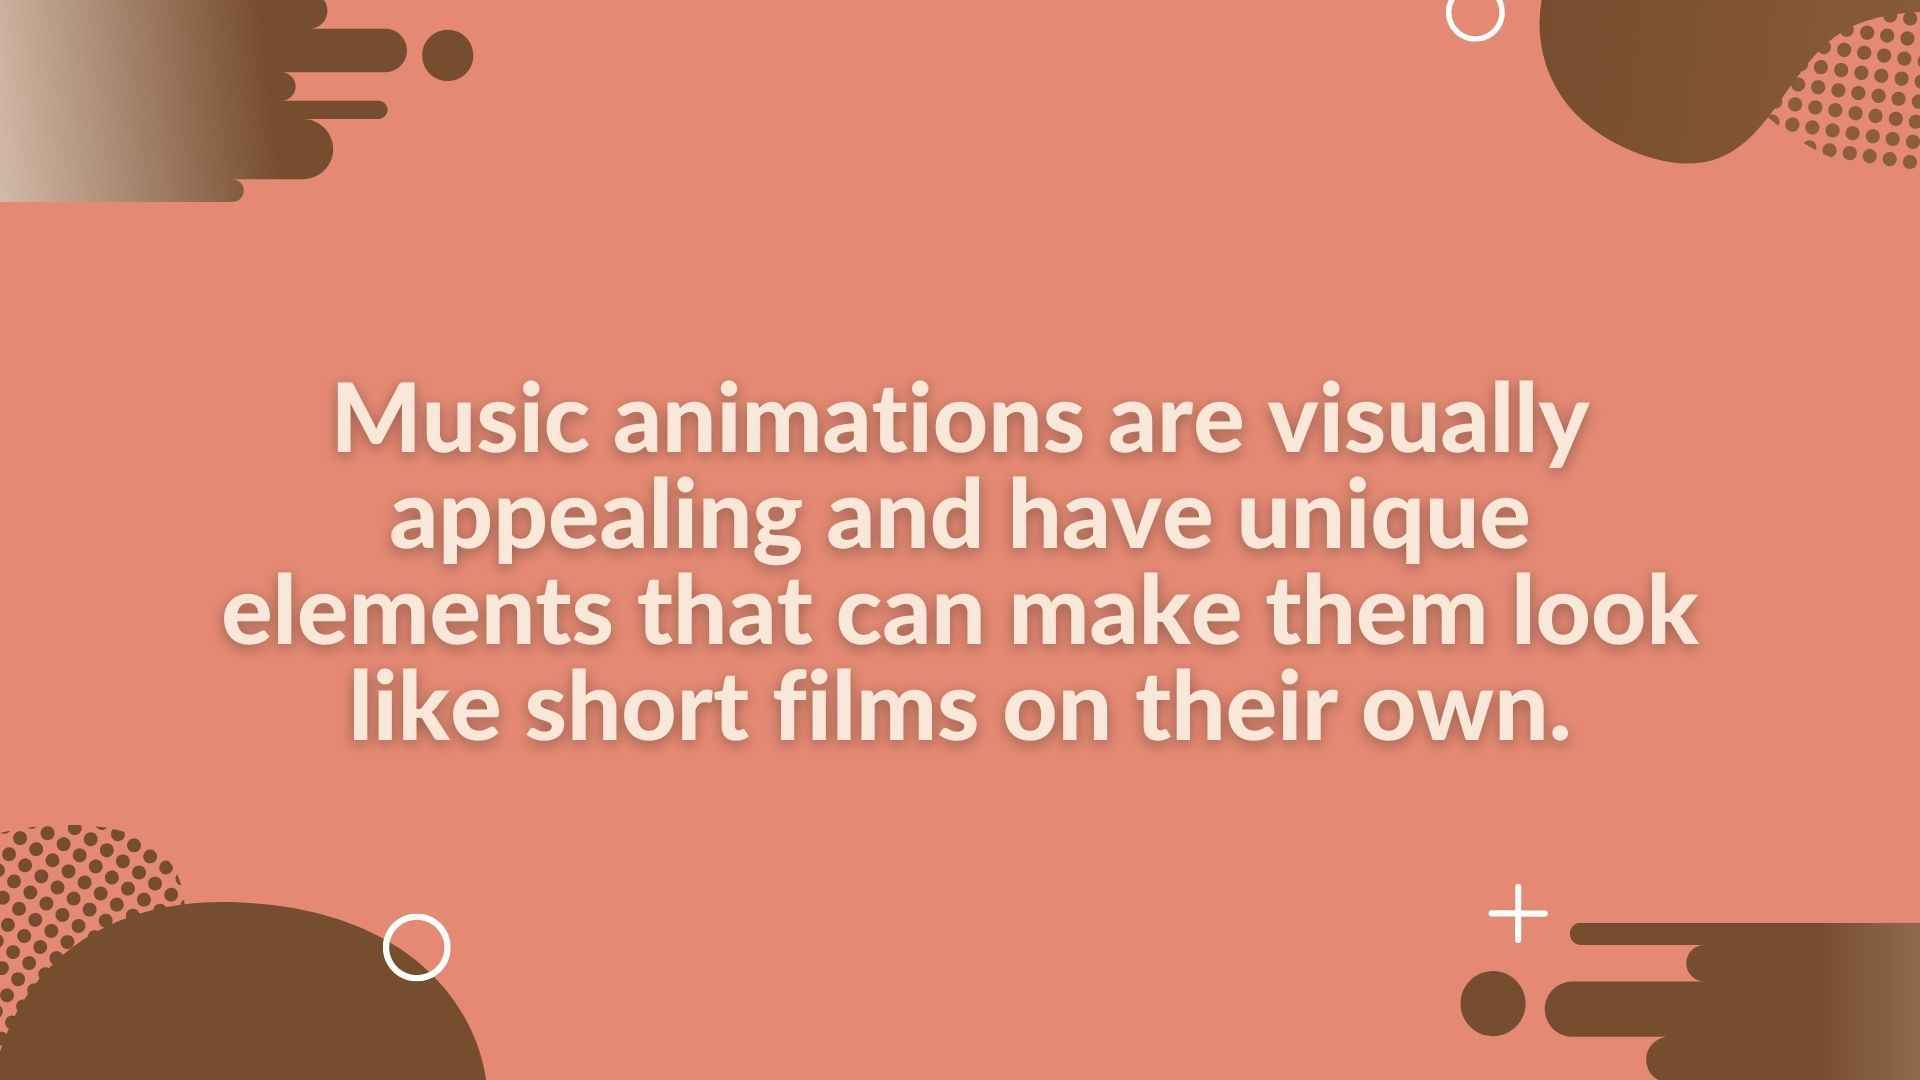 Music animations are visually appealing - animated music video